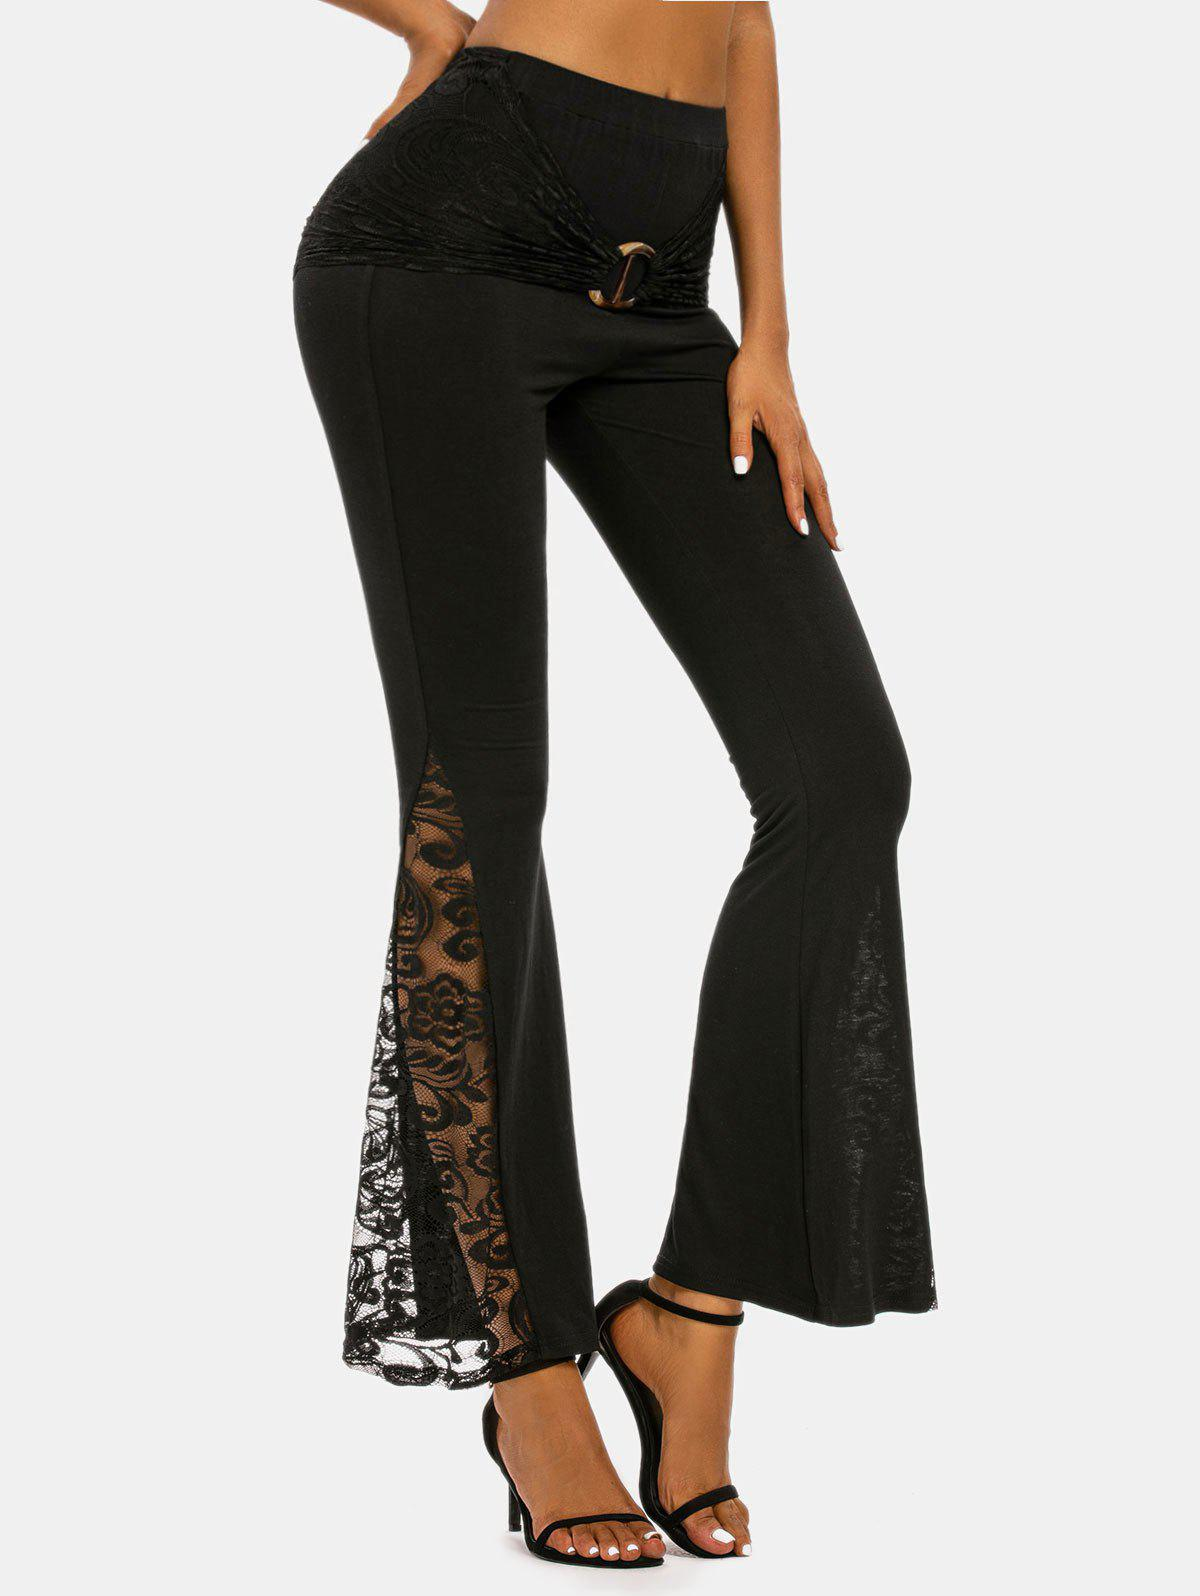 O-ring Ruched Lace Insert Flare Pants - BLACK 3XL